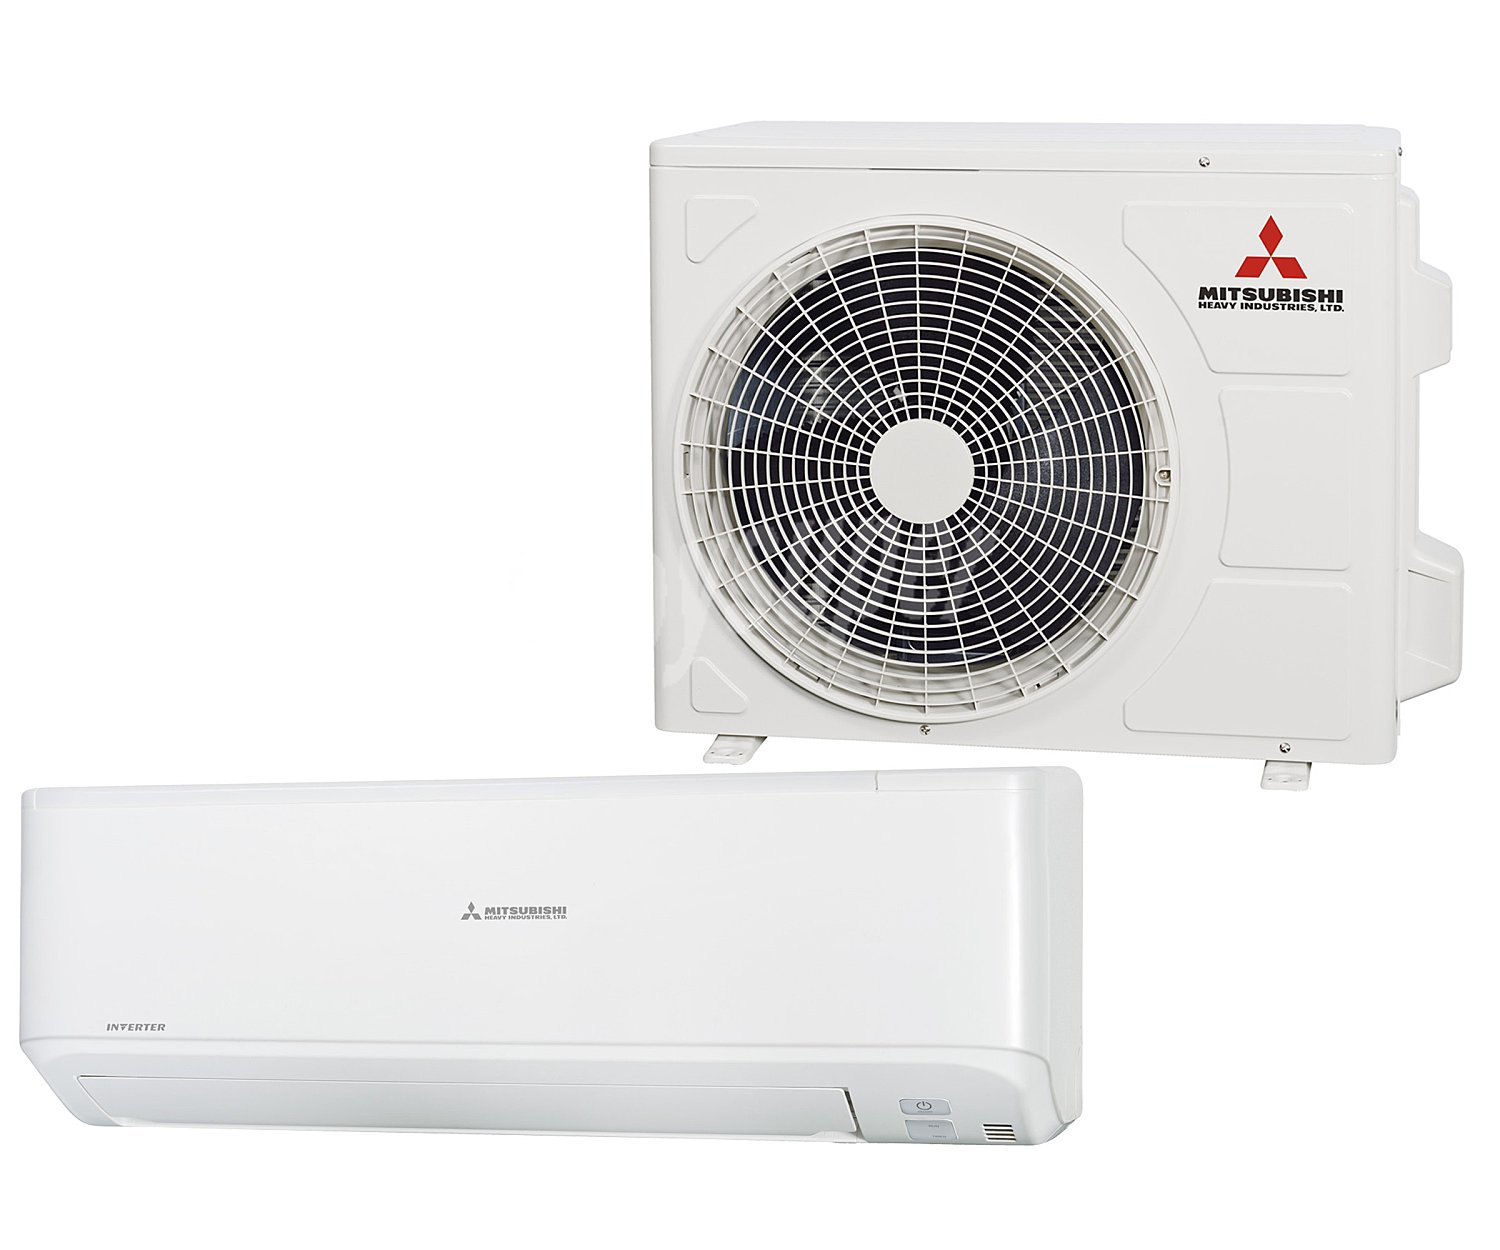 Mitsubishi dxk09x5 aire acondicionado split de pared con for Bomba de calor inverter